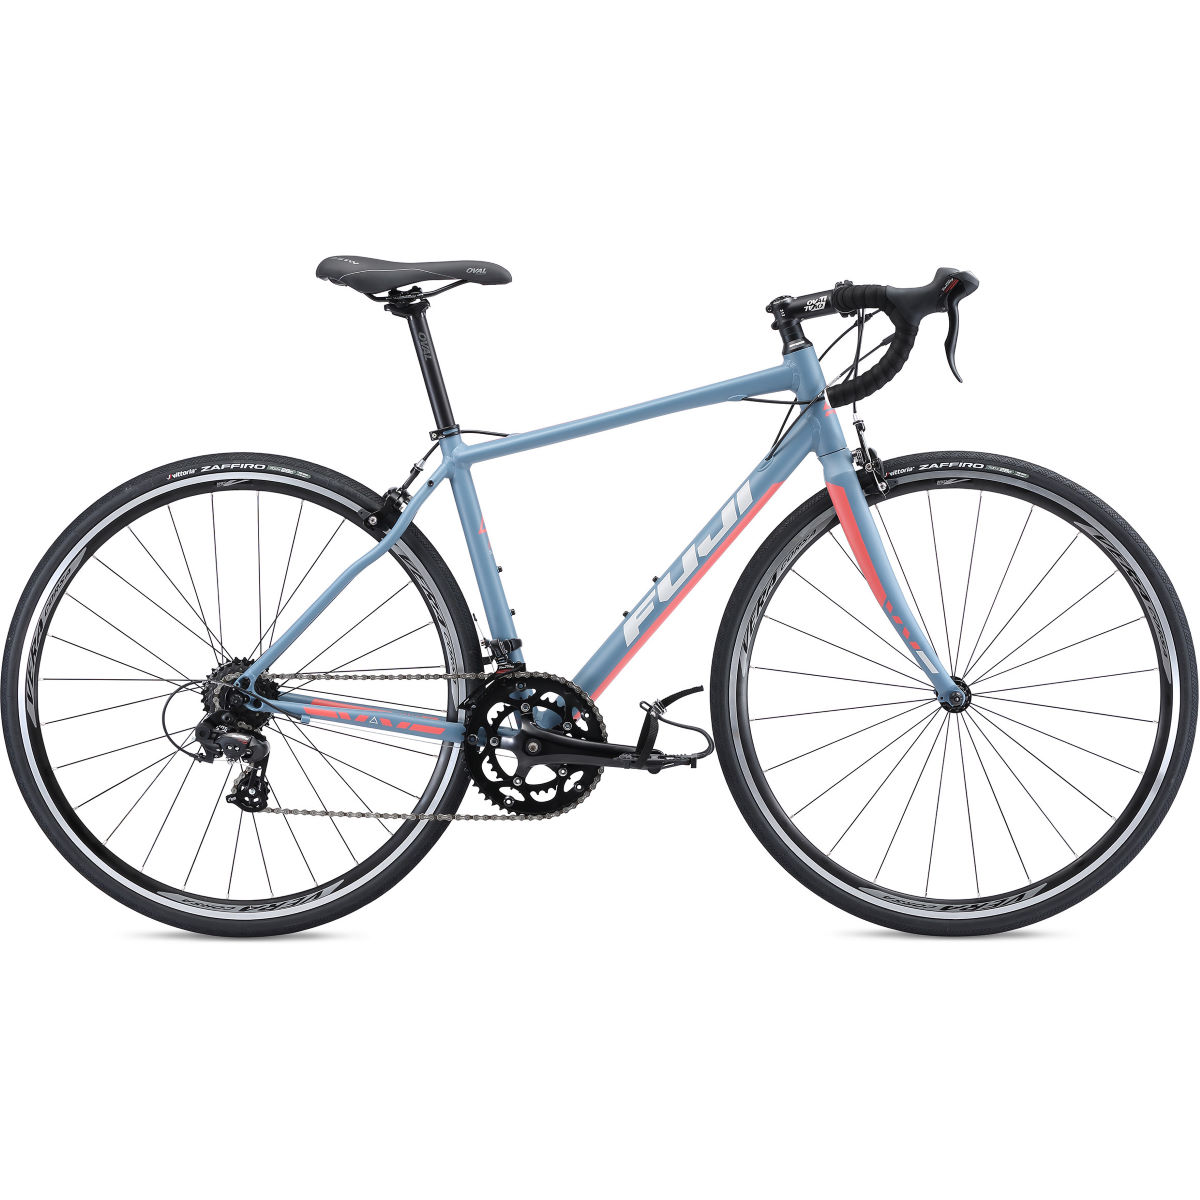 Vélo de route Fuji Finest 2.5 - 44cm Stock Bike Denim Blue